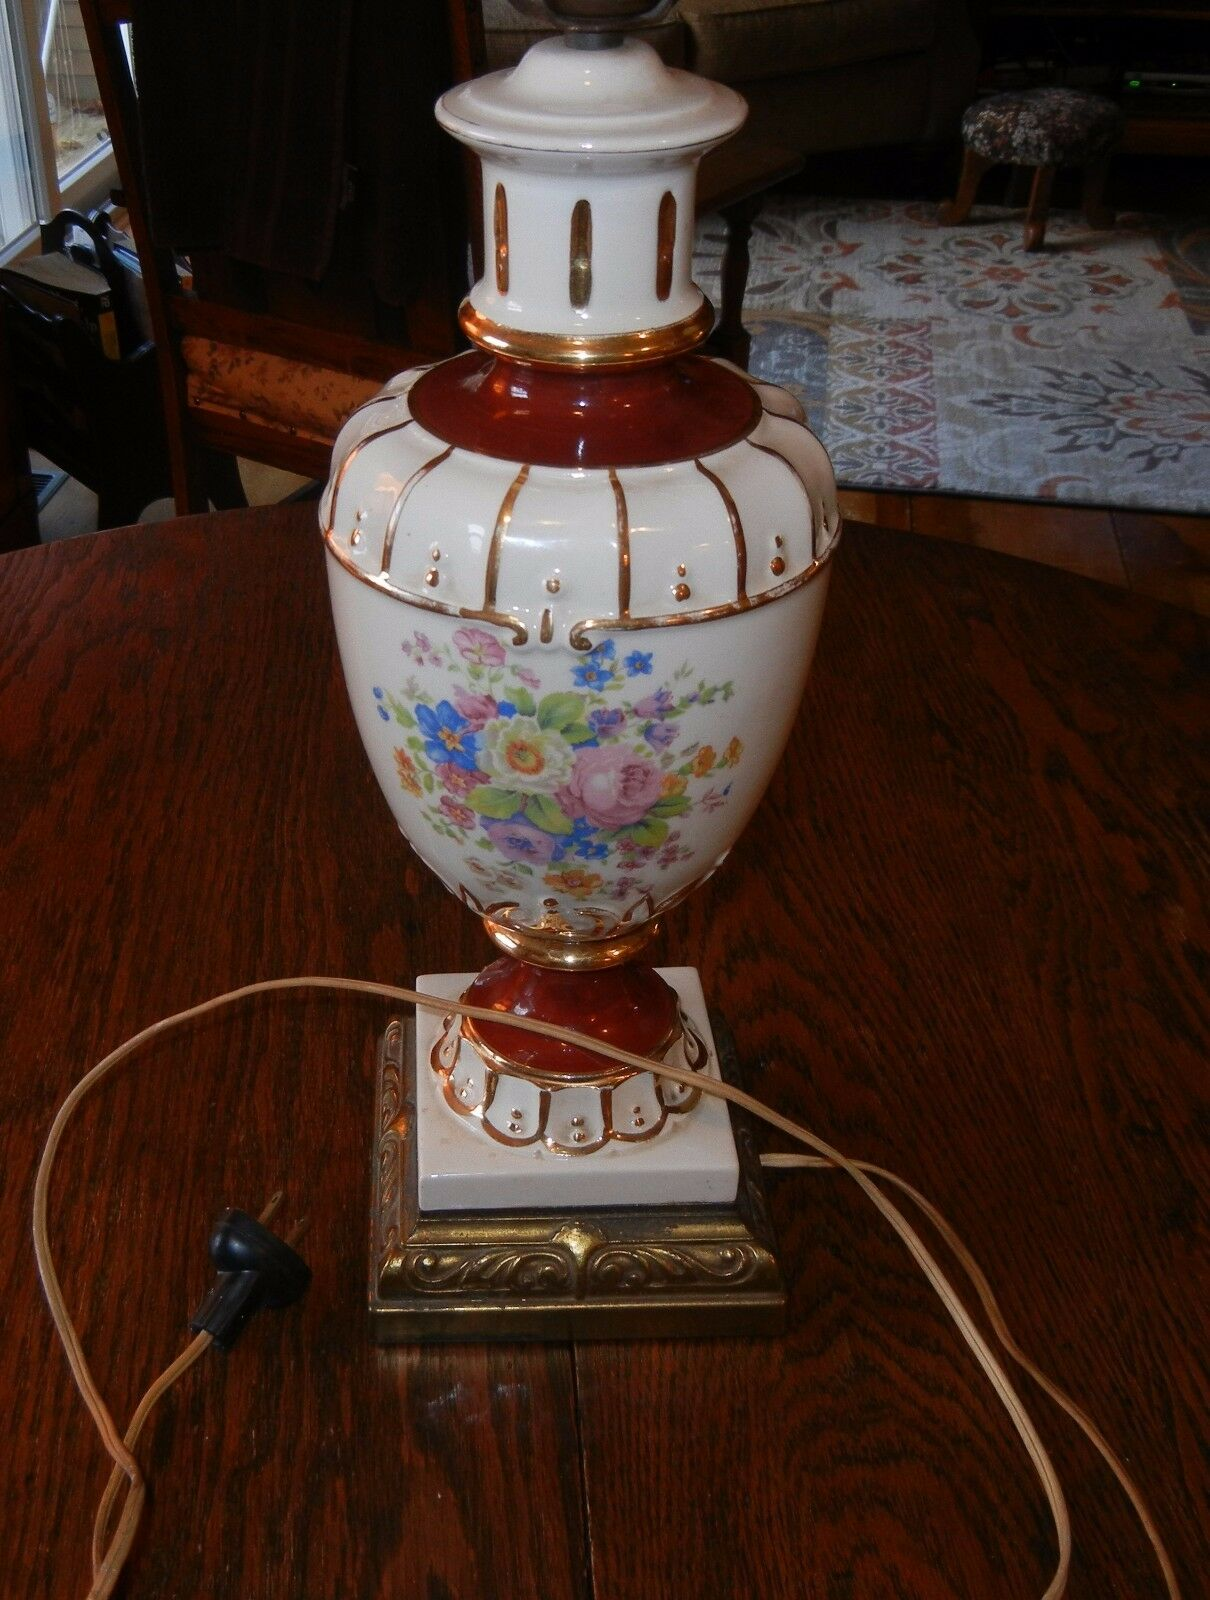 BEAUTIFUL PORCELAIN FarbeS VINTAGE LAMP IN GREAT CONDITION (MUST SEE PICTURES)